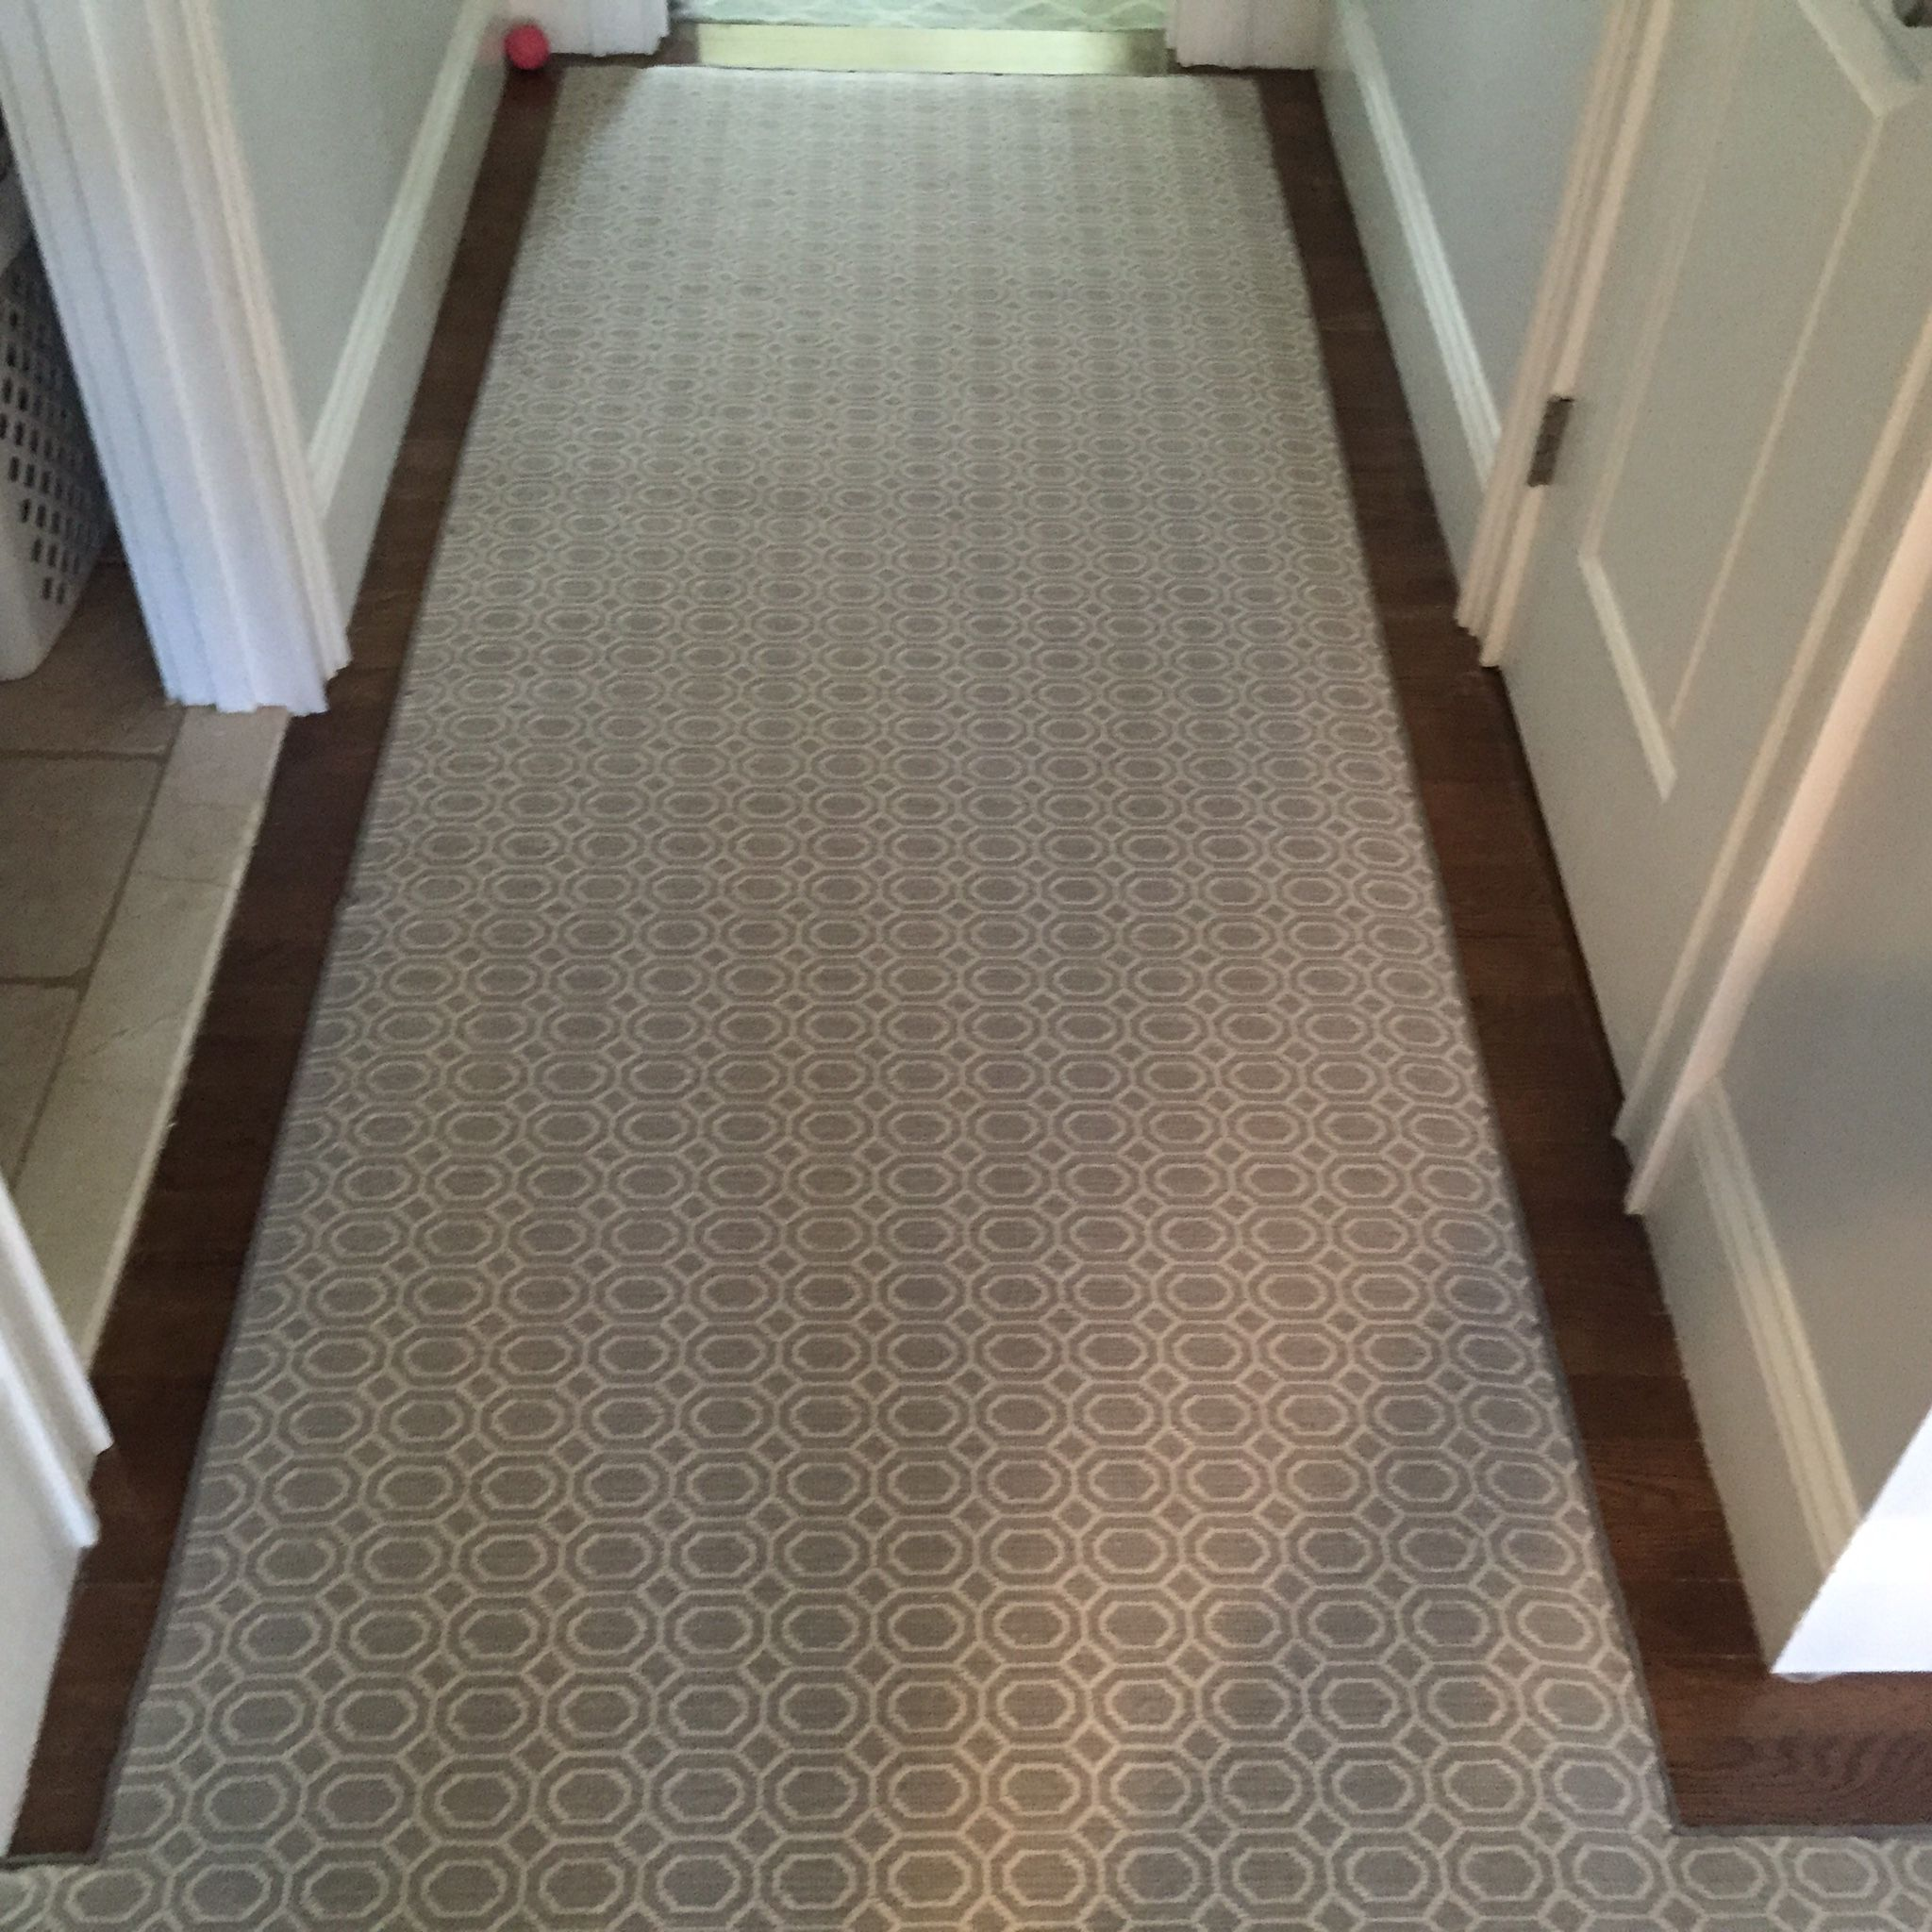 Pin By The Carpet Workroom On Hall Runners Home Carpet Rugs On Carpet Custom Area Rugs